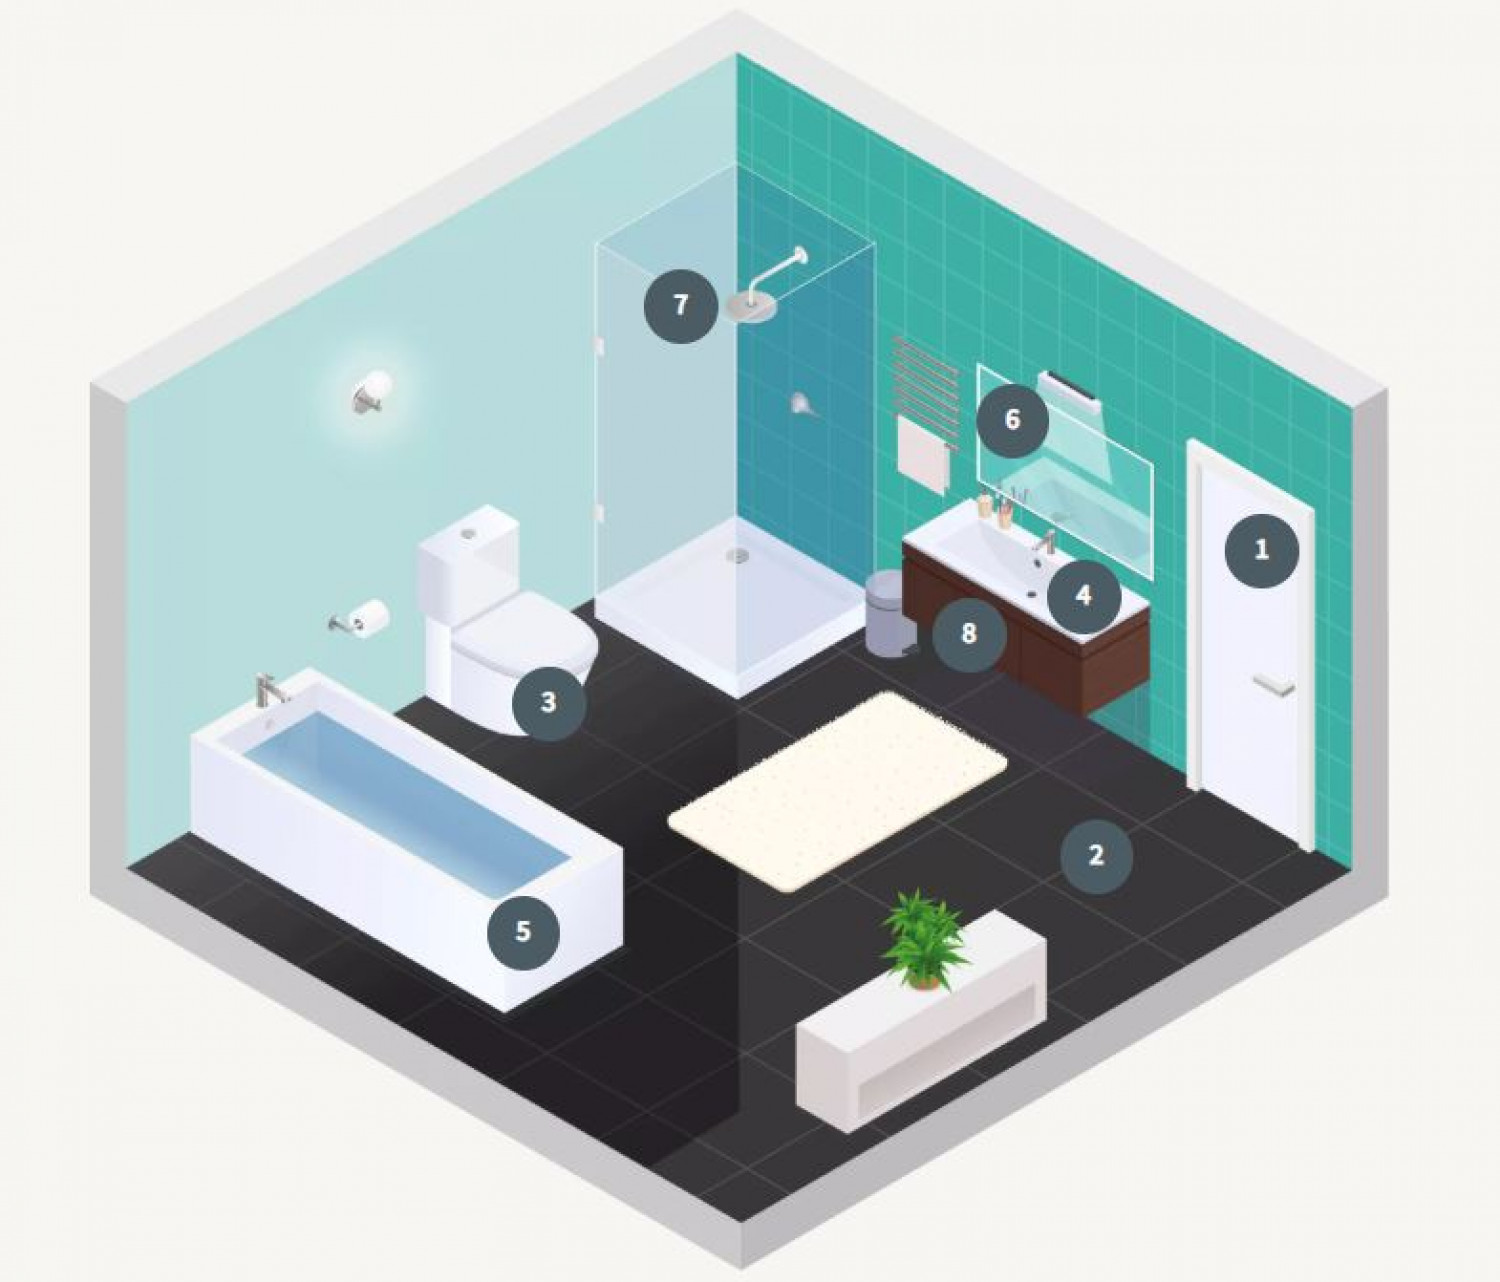 Interactive Bathroom of the Future Infographic